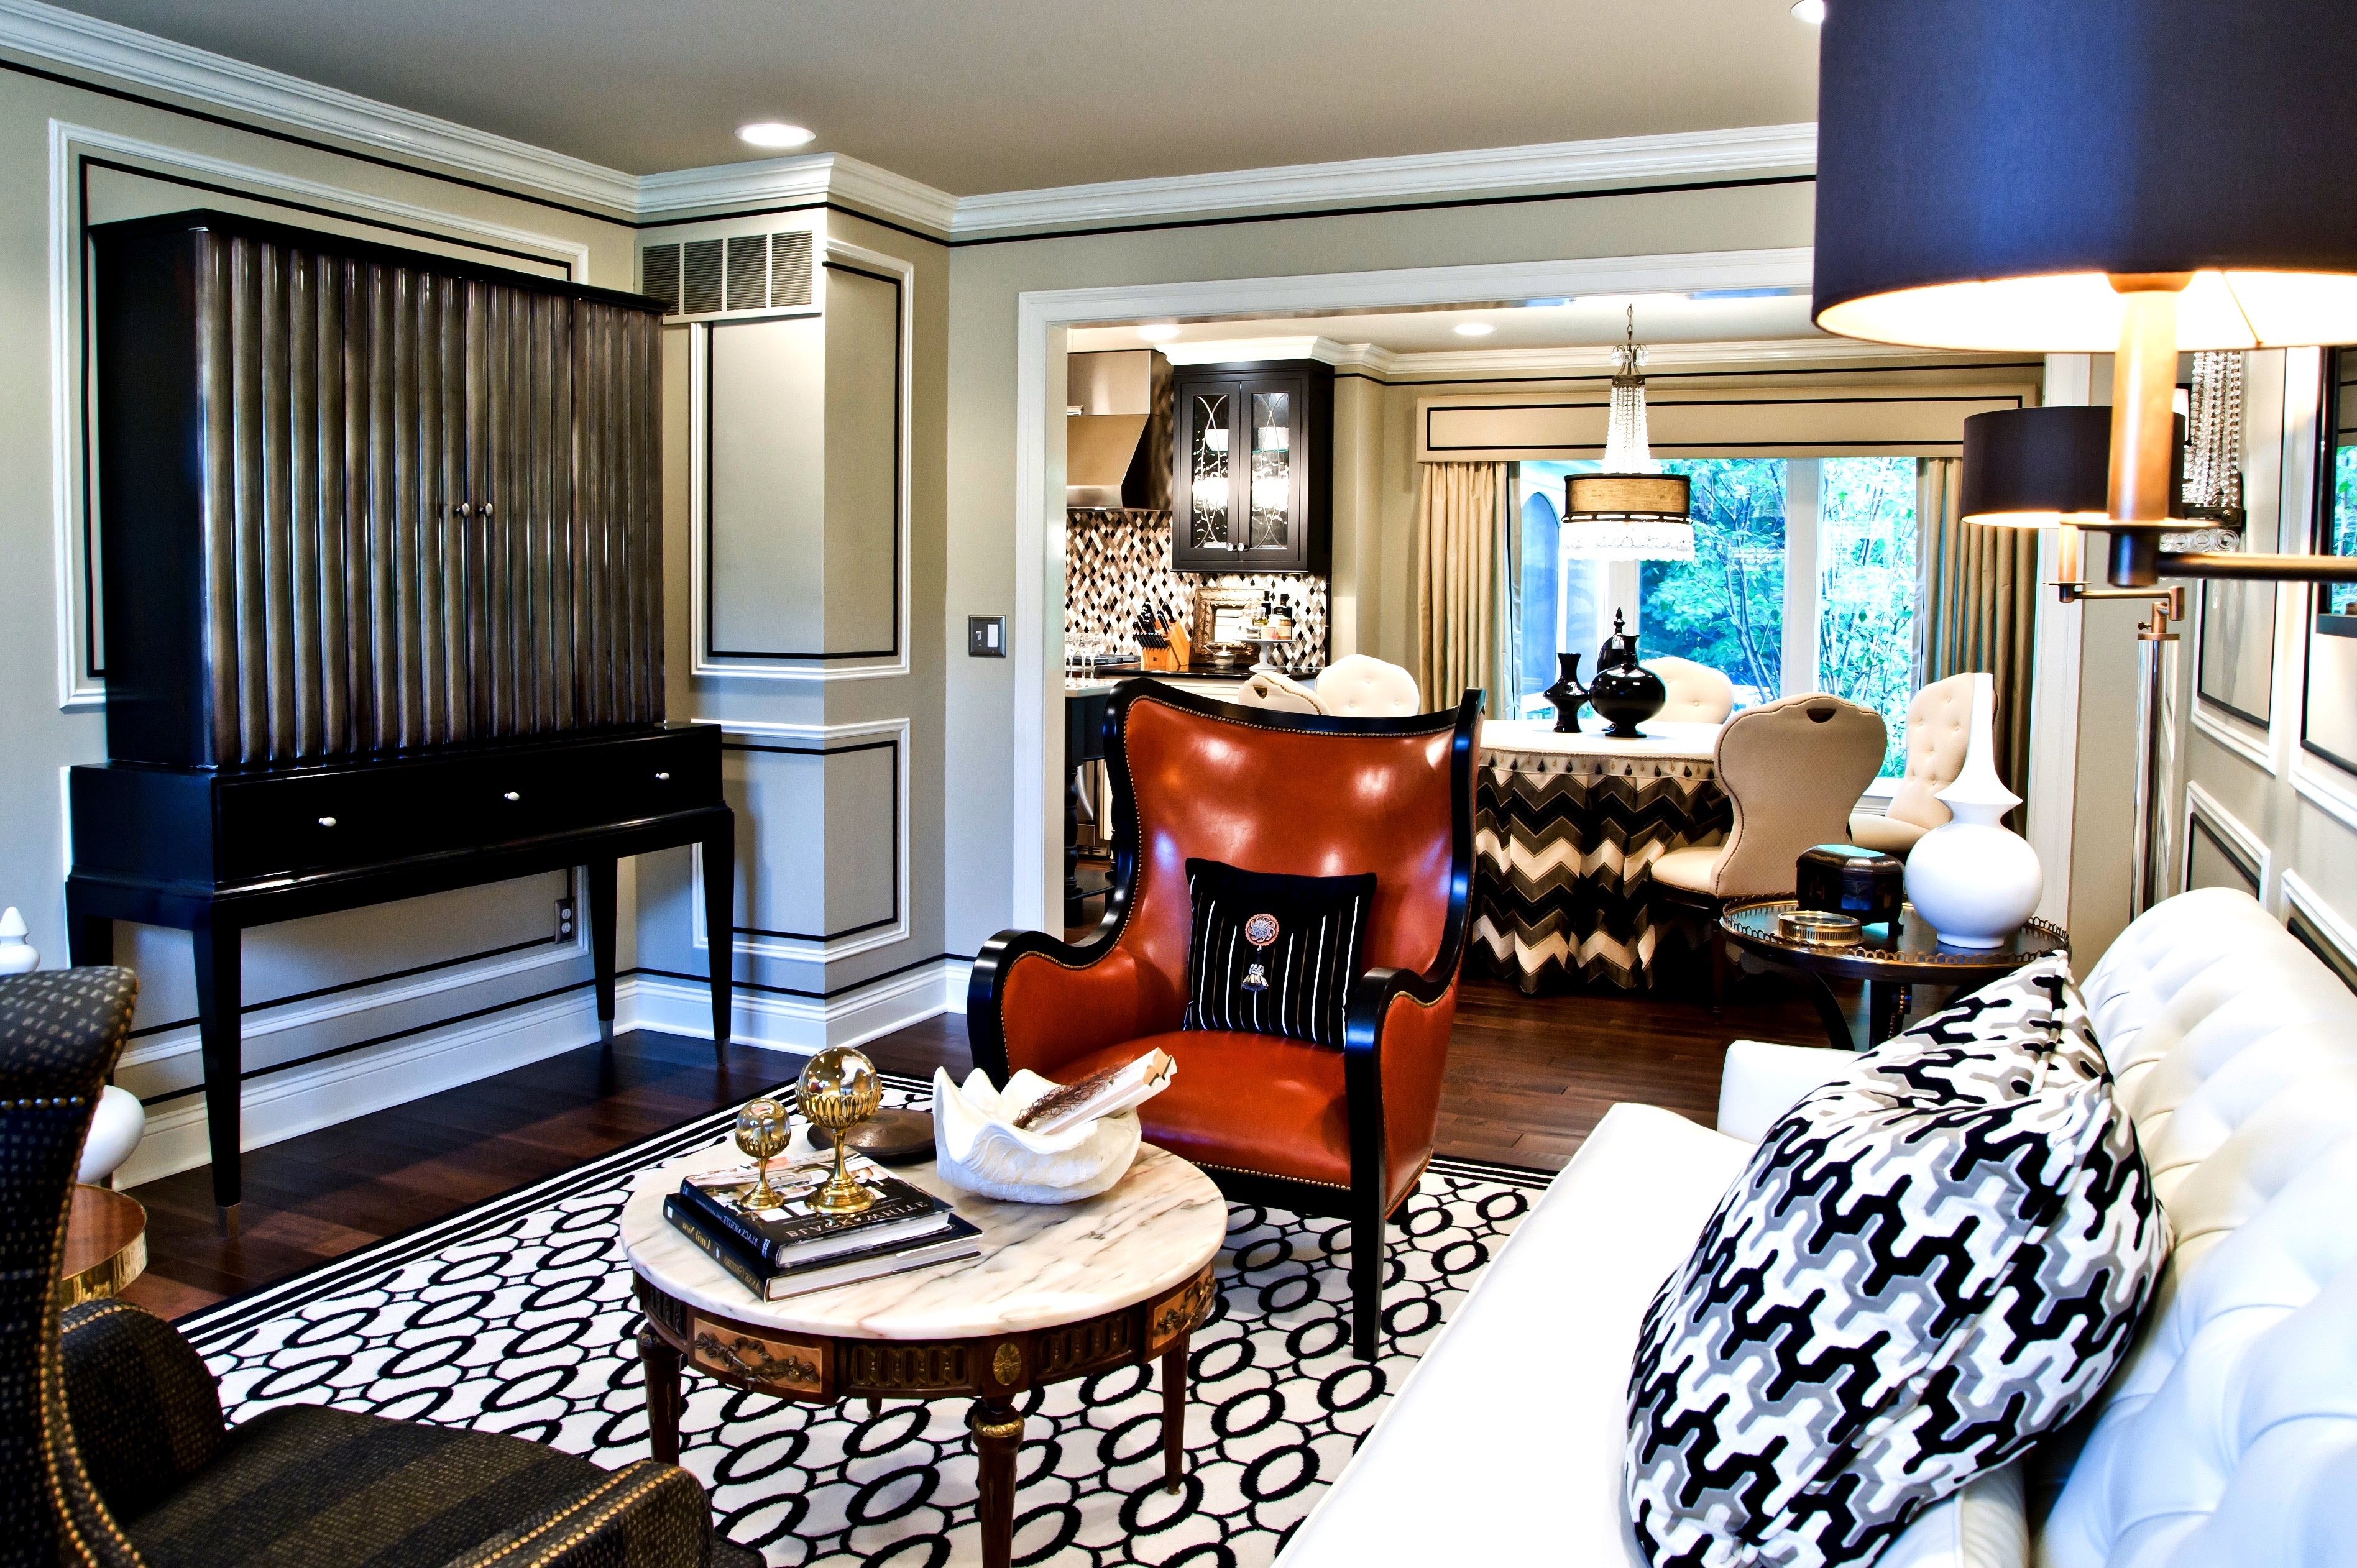 20 Art Deco Inspired Living Room Design And Ideas 18354